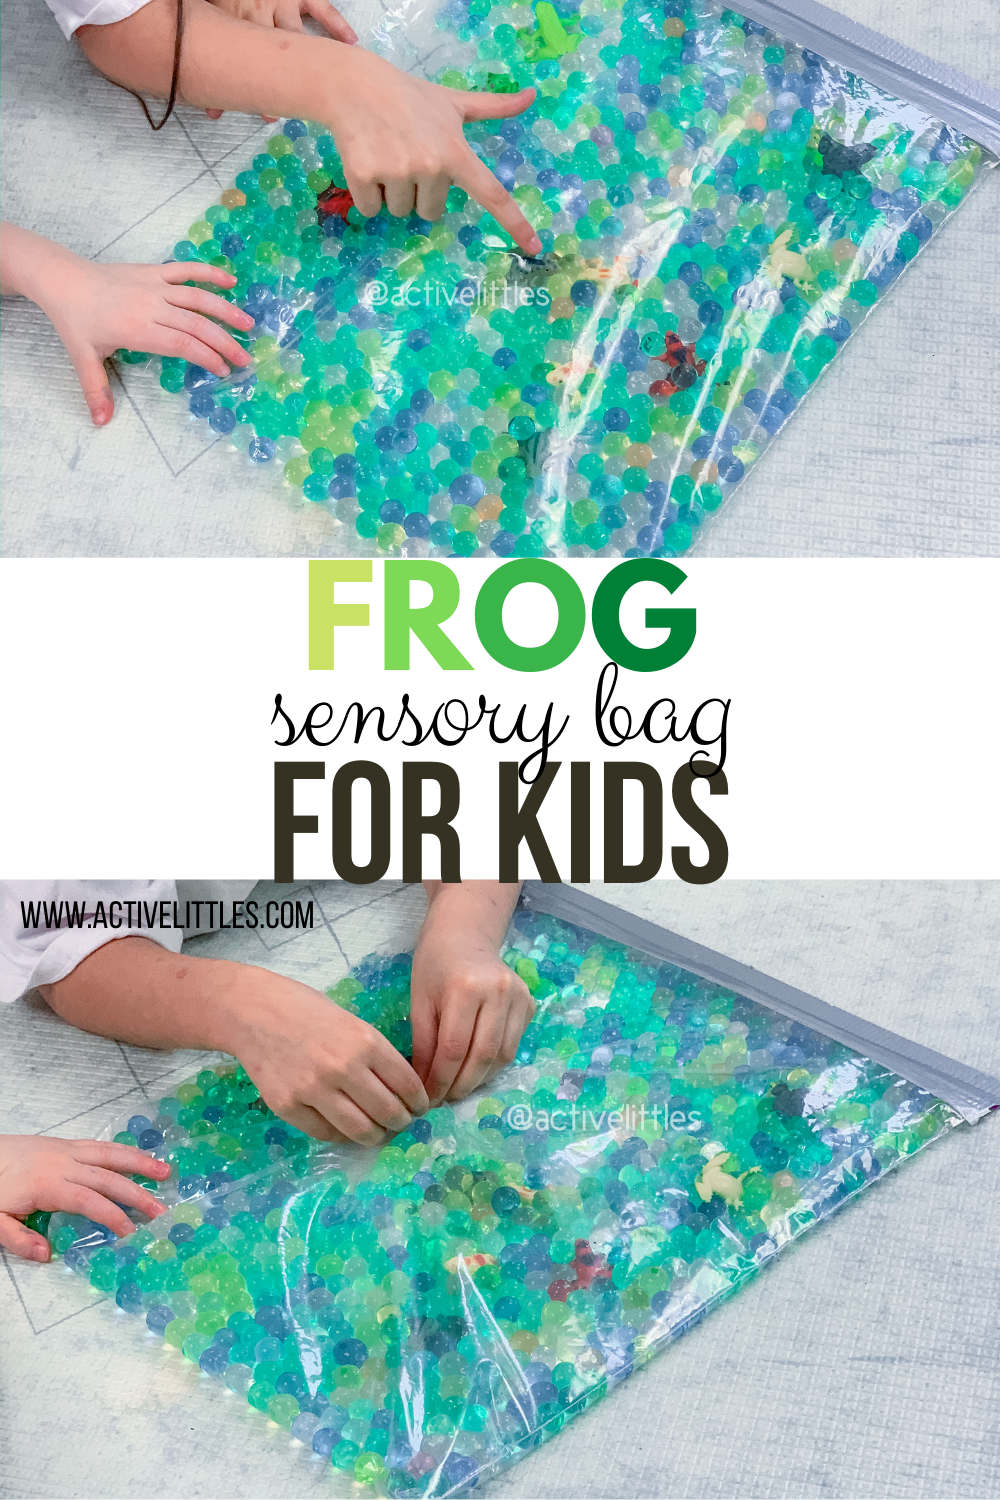 frog sensory bag for kids